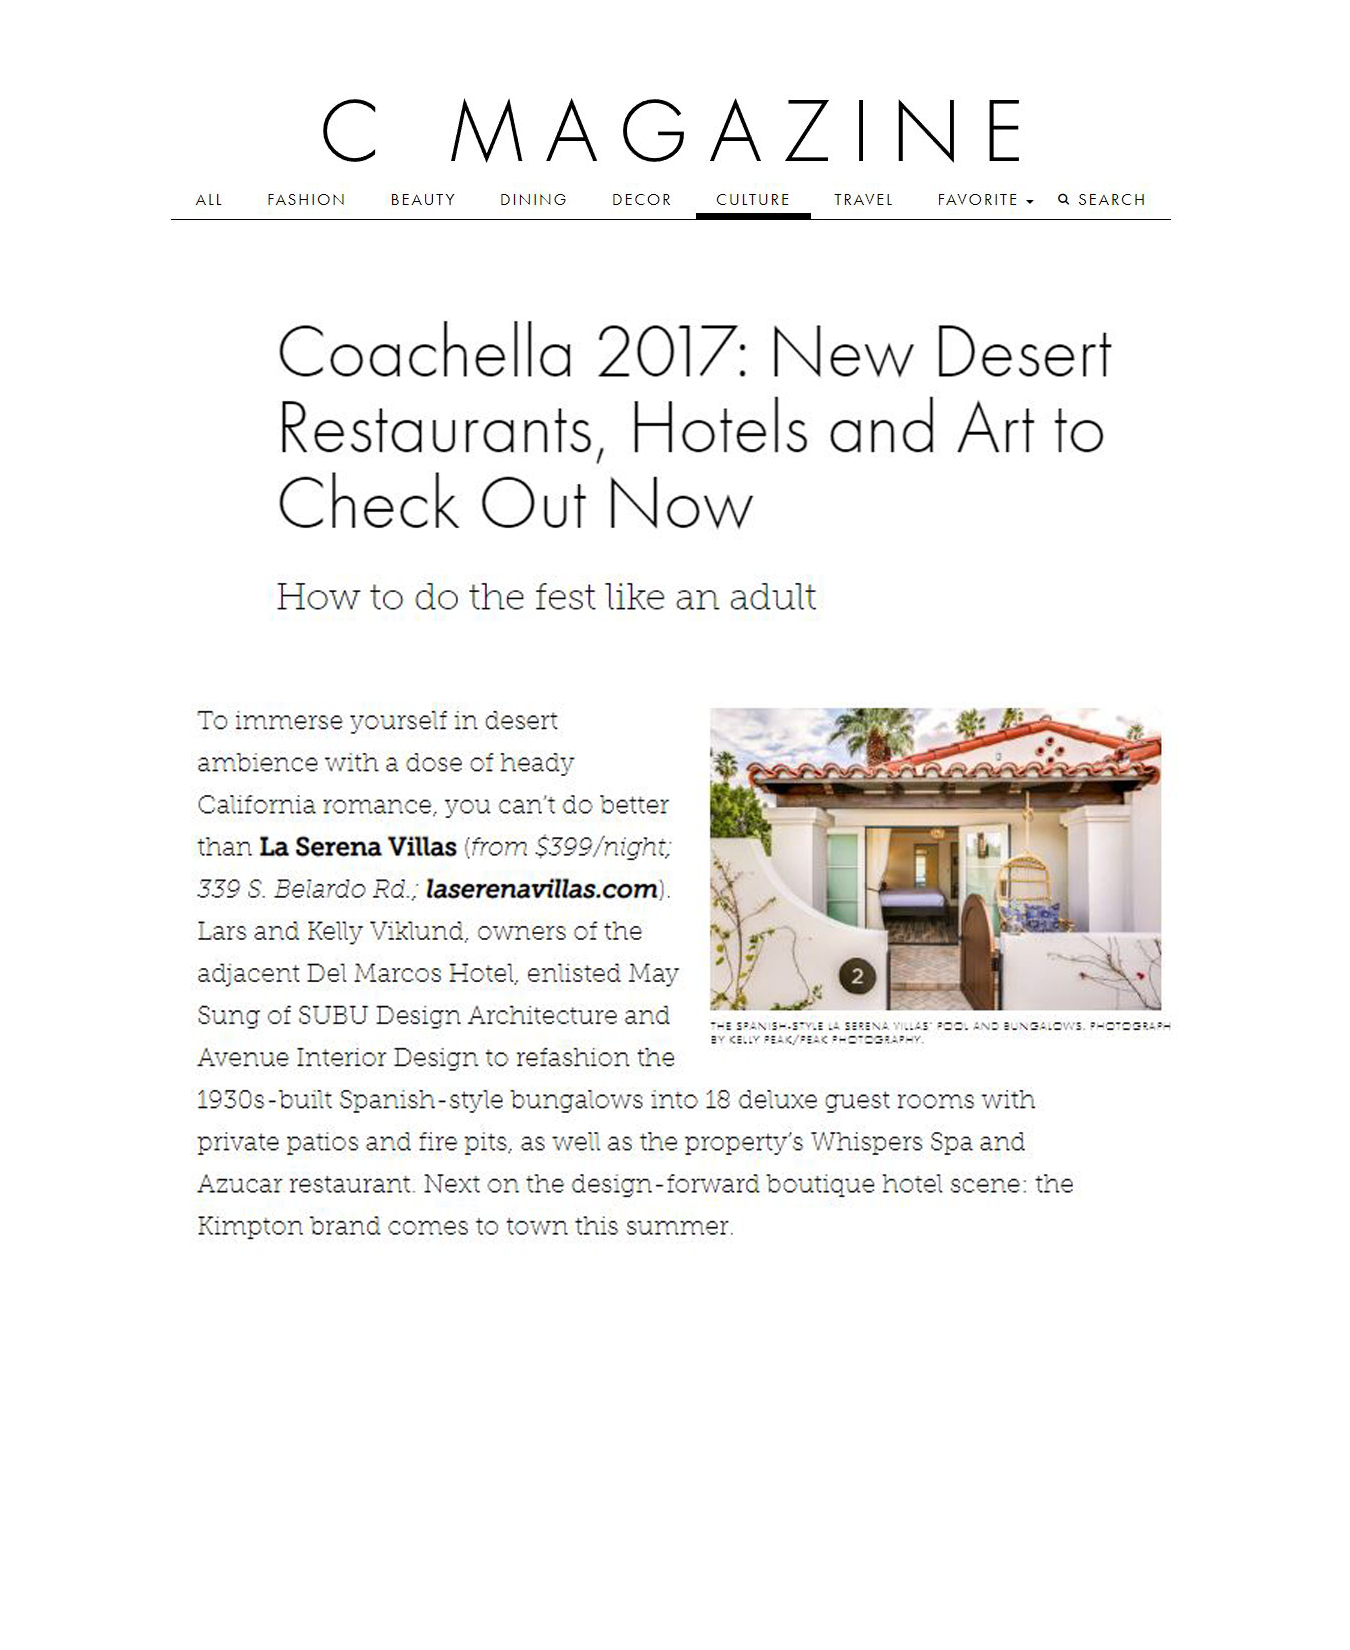 C magazine - APRIL 2017 - COACHELLA 2017: NEW DESERT RESTAURANTS,HOTELS, AND ART TO CHECK OUT NOW - HOW TO DO THE FEST LIKE AN ADULT